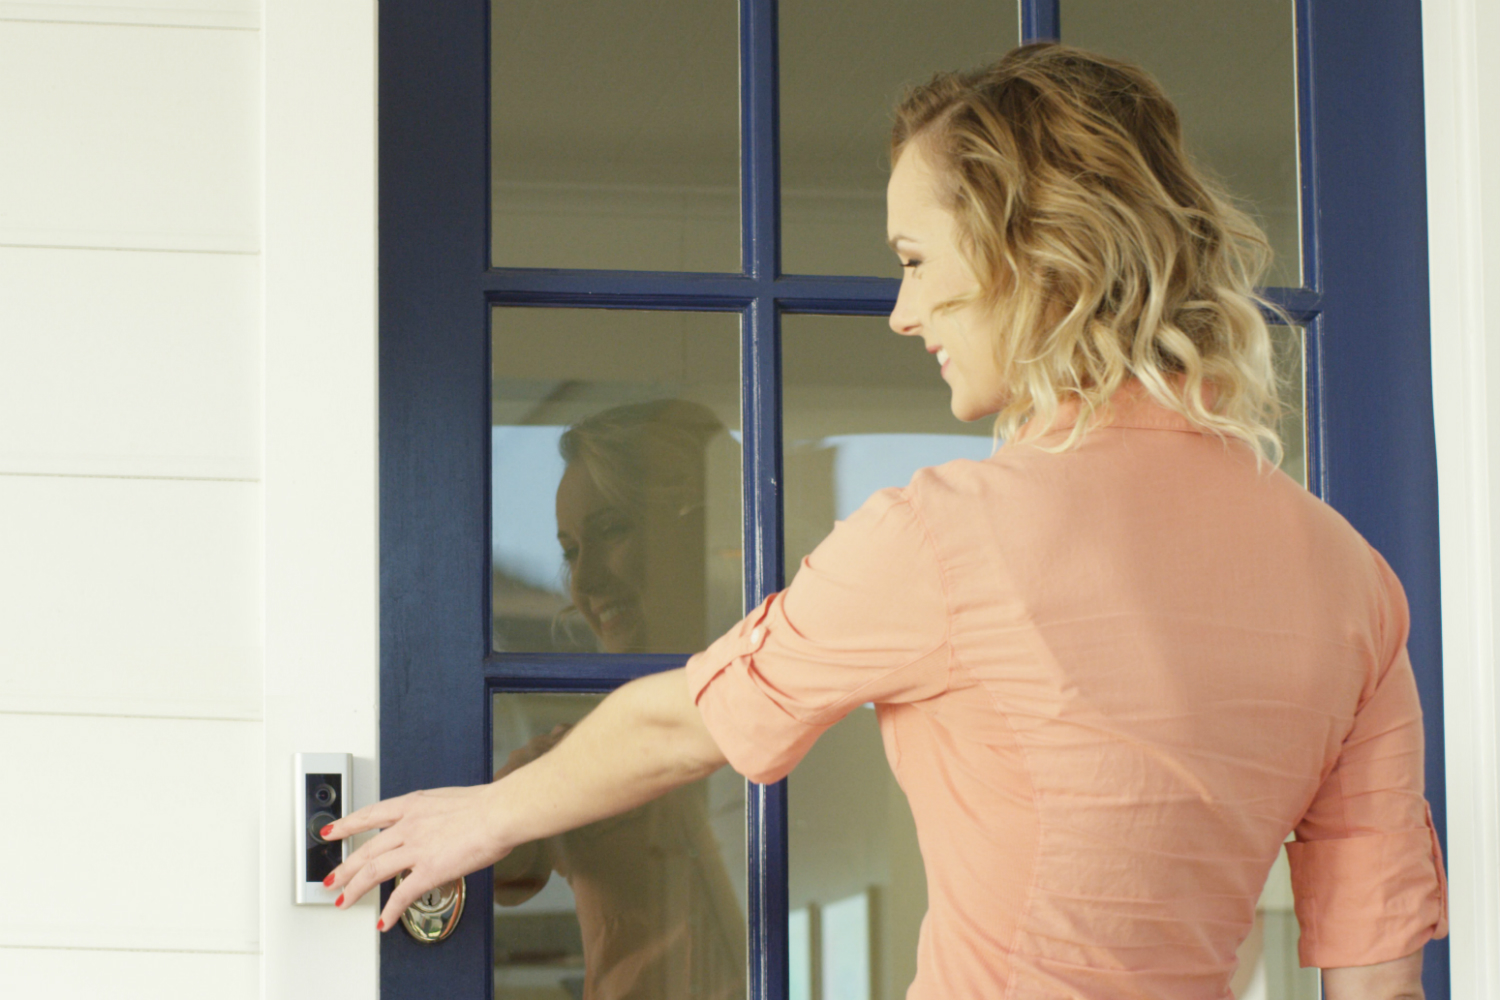 Ring Adds Yet Another Video Doorbell To Its Expanding